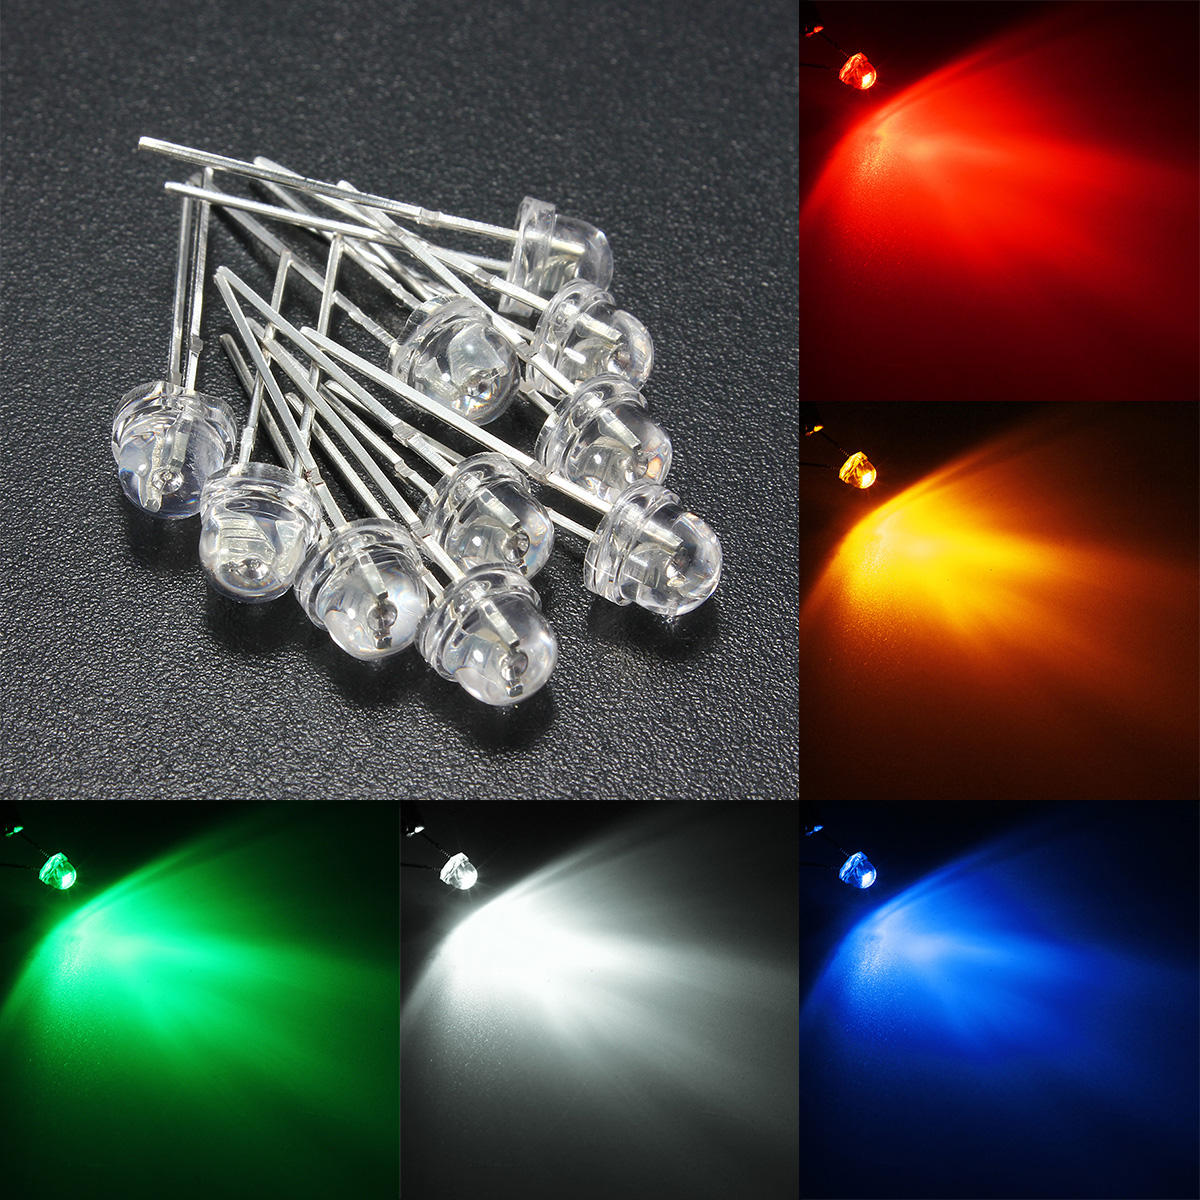 Diode Lighting 10pcs 5mm 5 Color Water Clear Straw Hat Led Diodes Assortment Diy Light